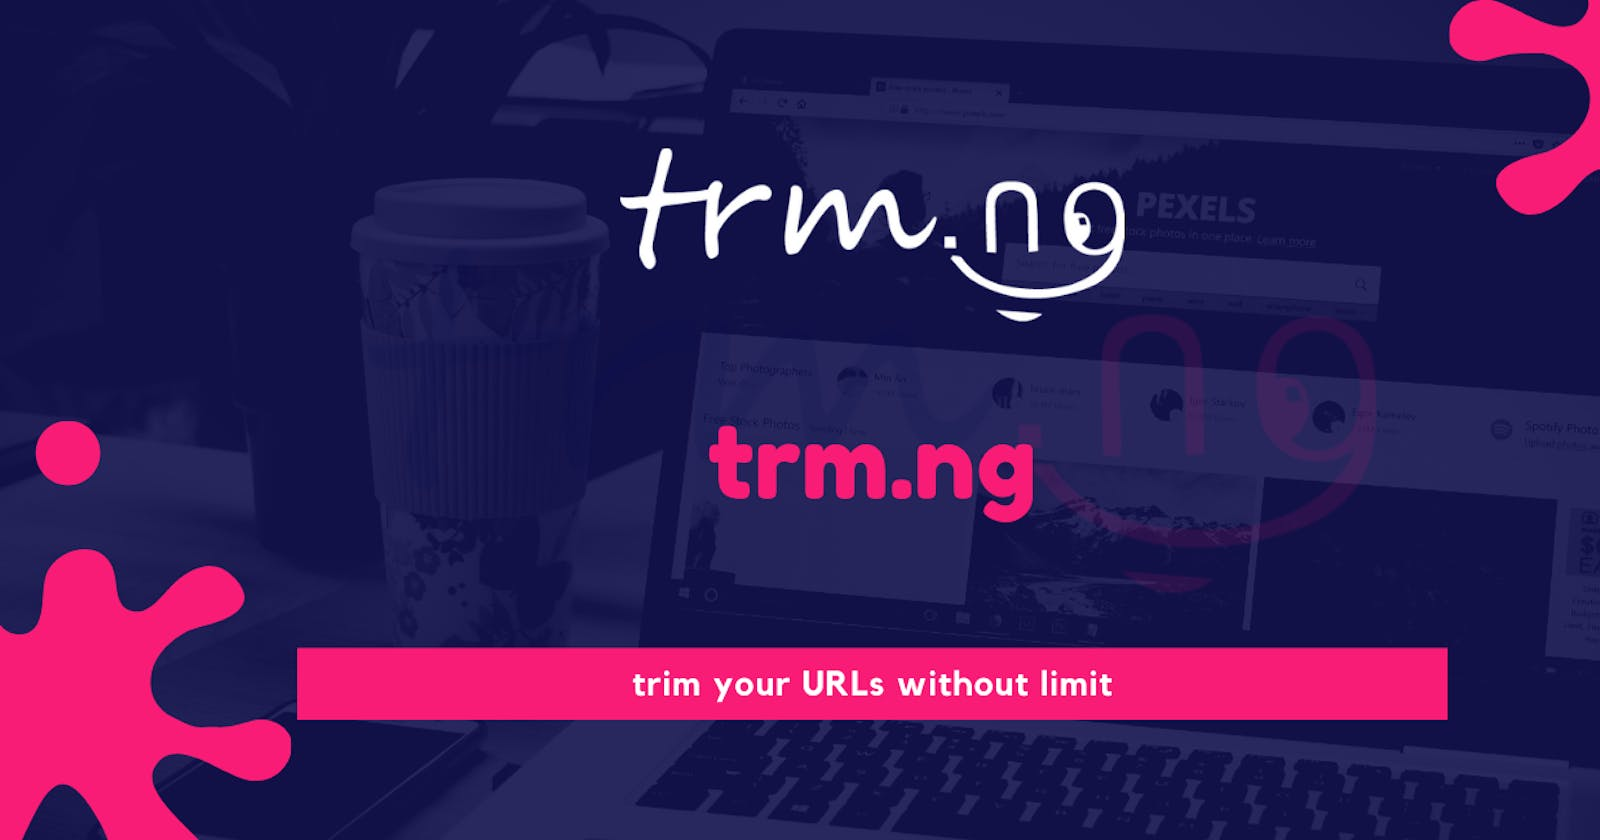 trm.ng URL trimming service, Prima trimmer Africa.